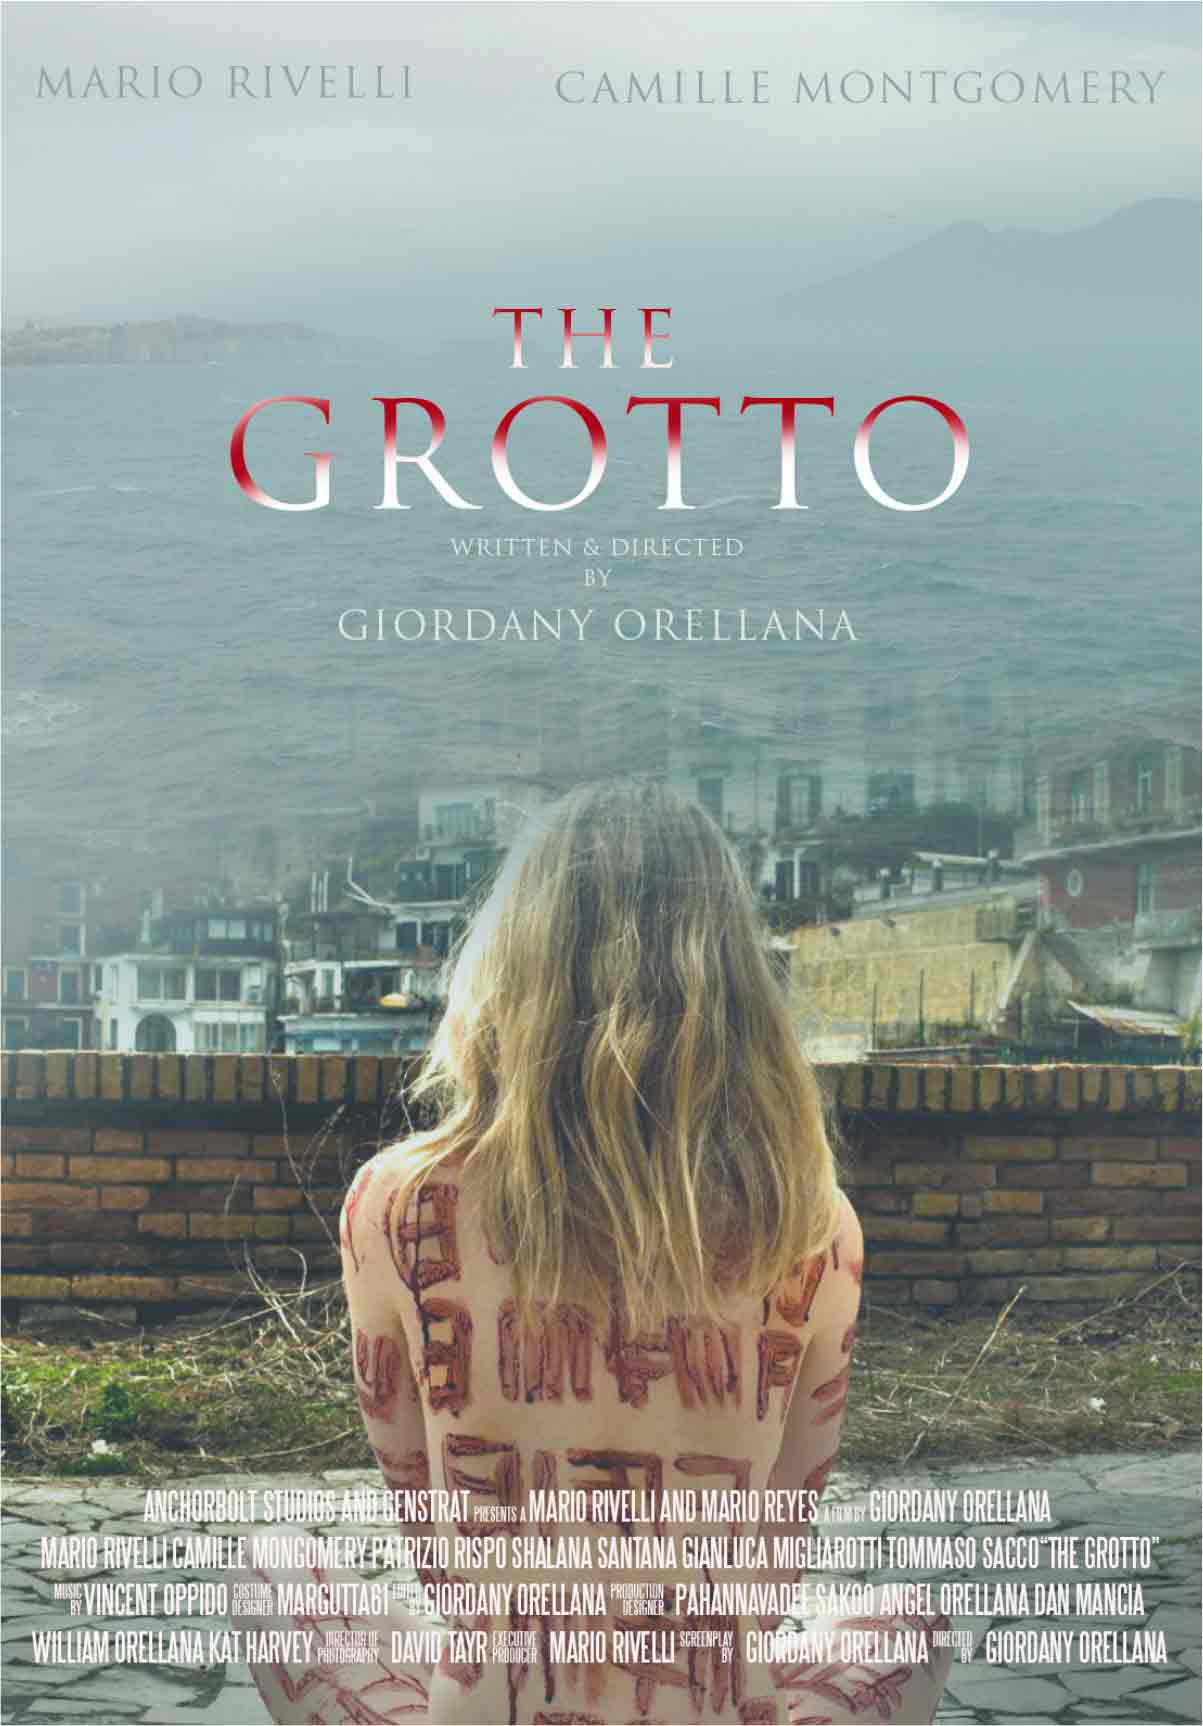 The grotto MR8 Productions